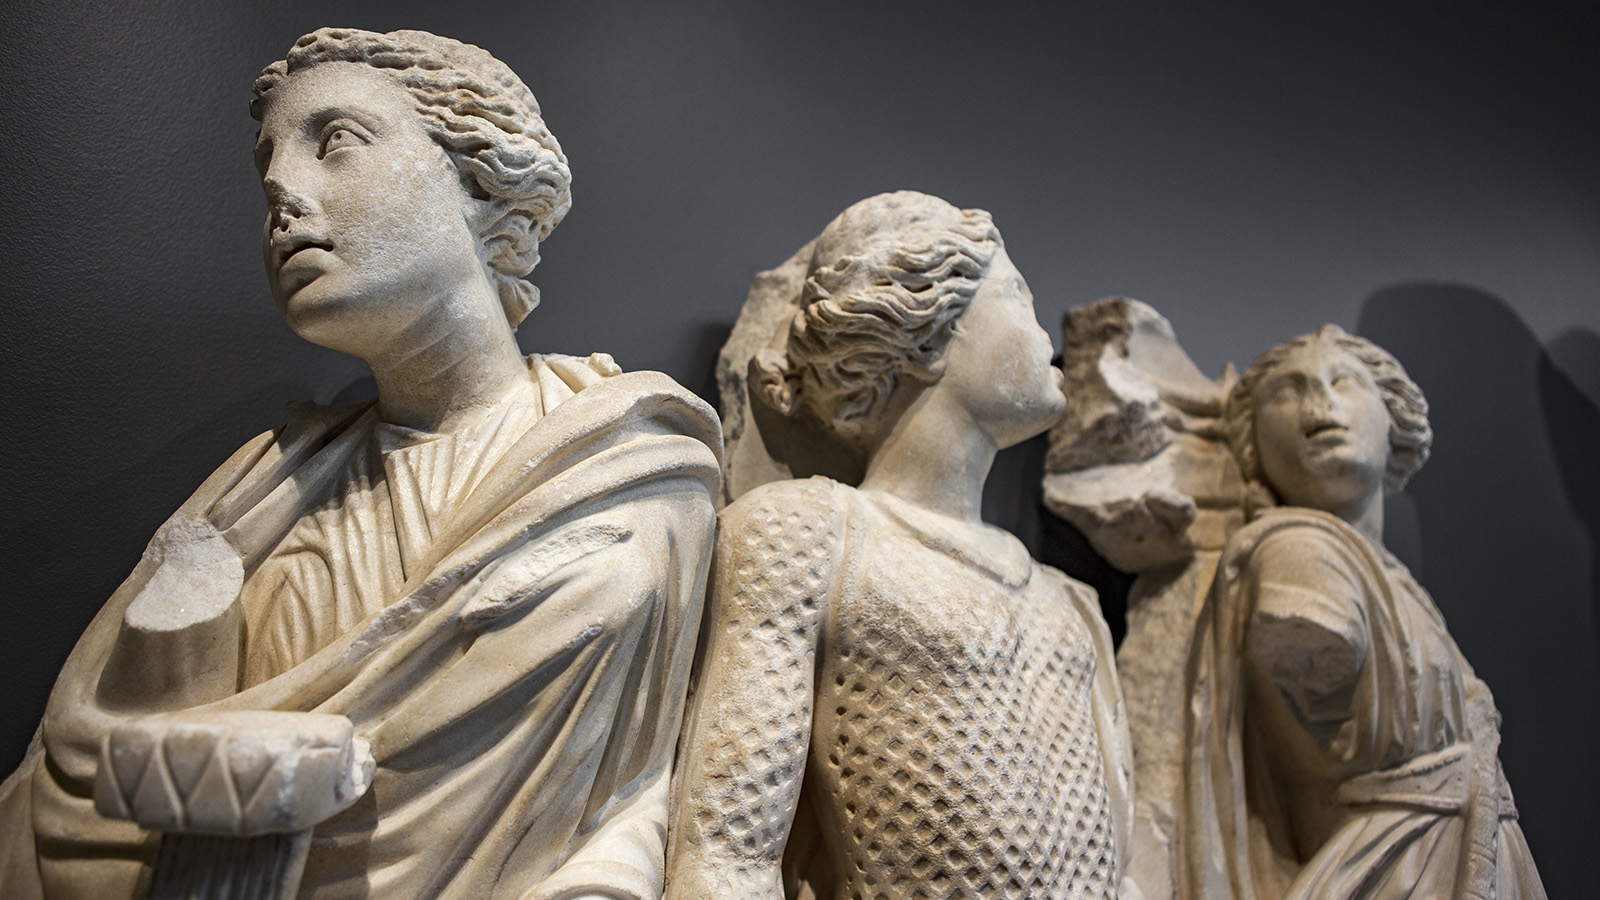 Close Up Detail Of The Faces And Torsos Of Three Muses Sculpted In White Marble